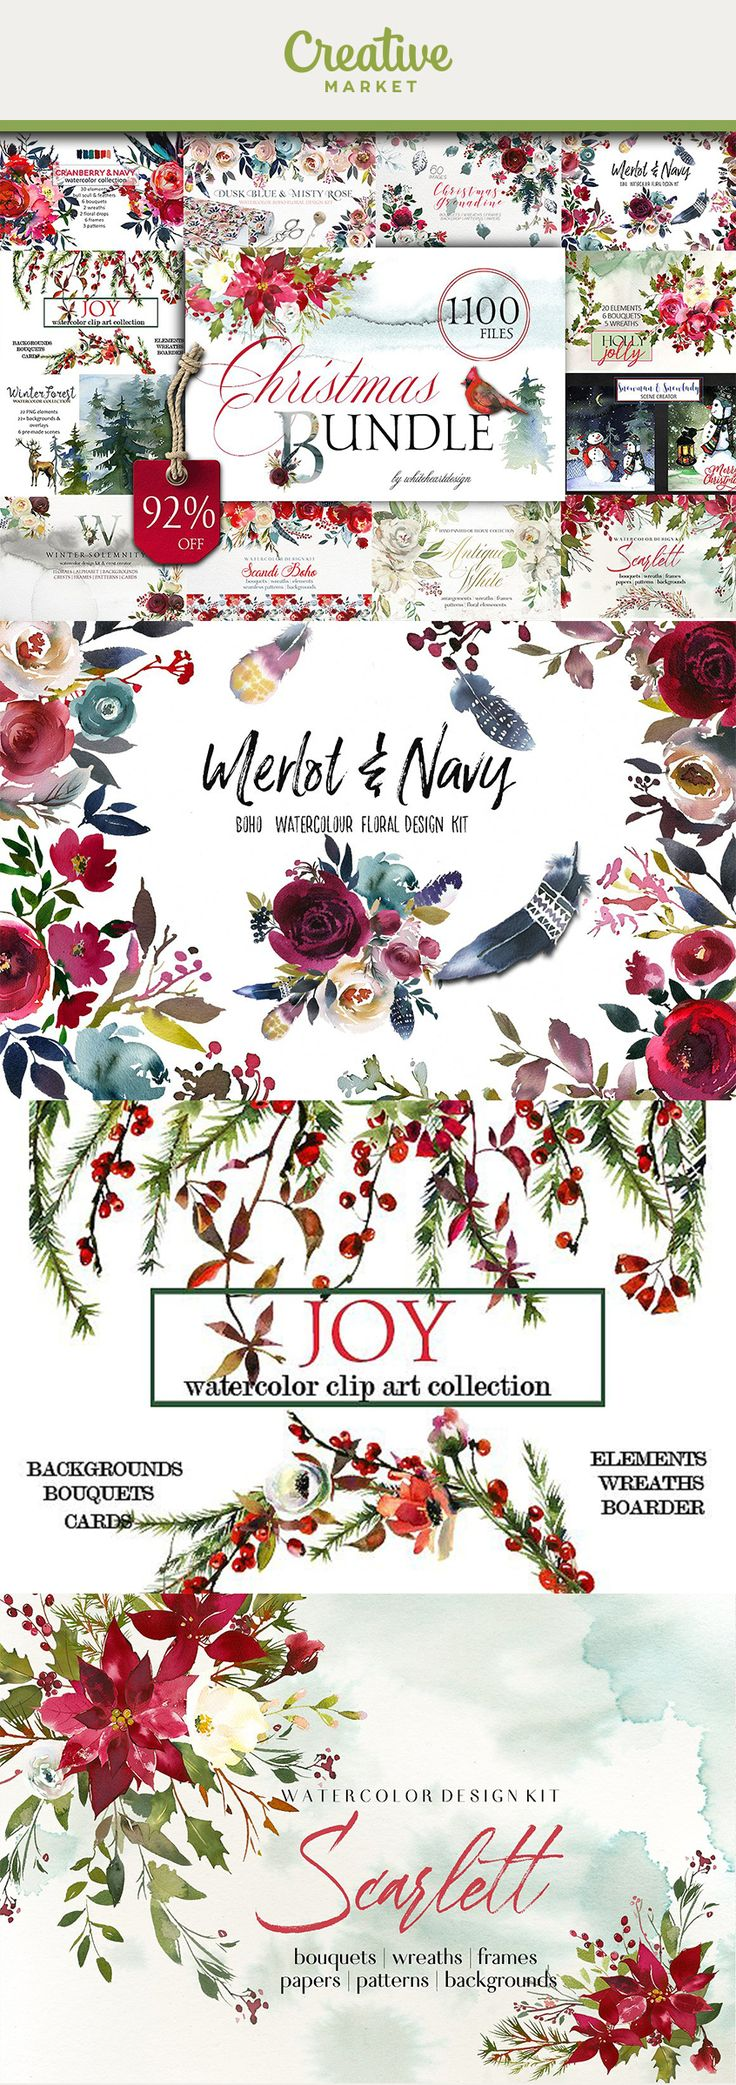 Ad | Christmas Watercolor Bundle - flowers, animals, landscapes, creator kits, patterns - 24 new and most popular winter clipart collections in one! Great for Christmas projects,wedding, baby shower invitation cards, greeting cards, printables, wall art, logo, web and blog designs, invitations and many more. Get now on Creative Market!